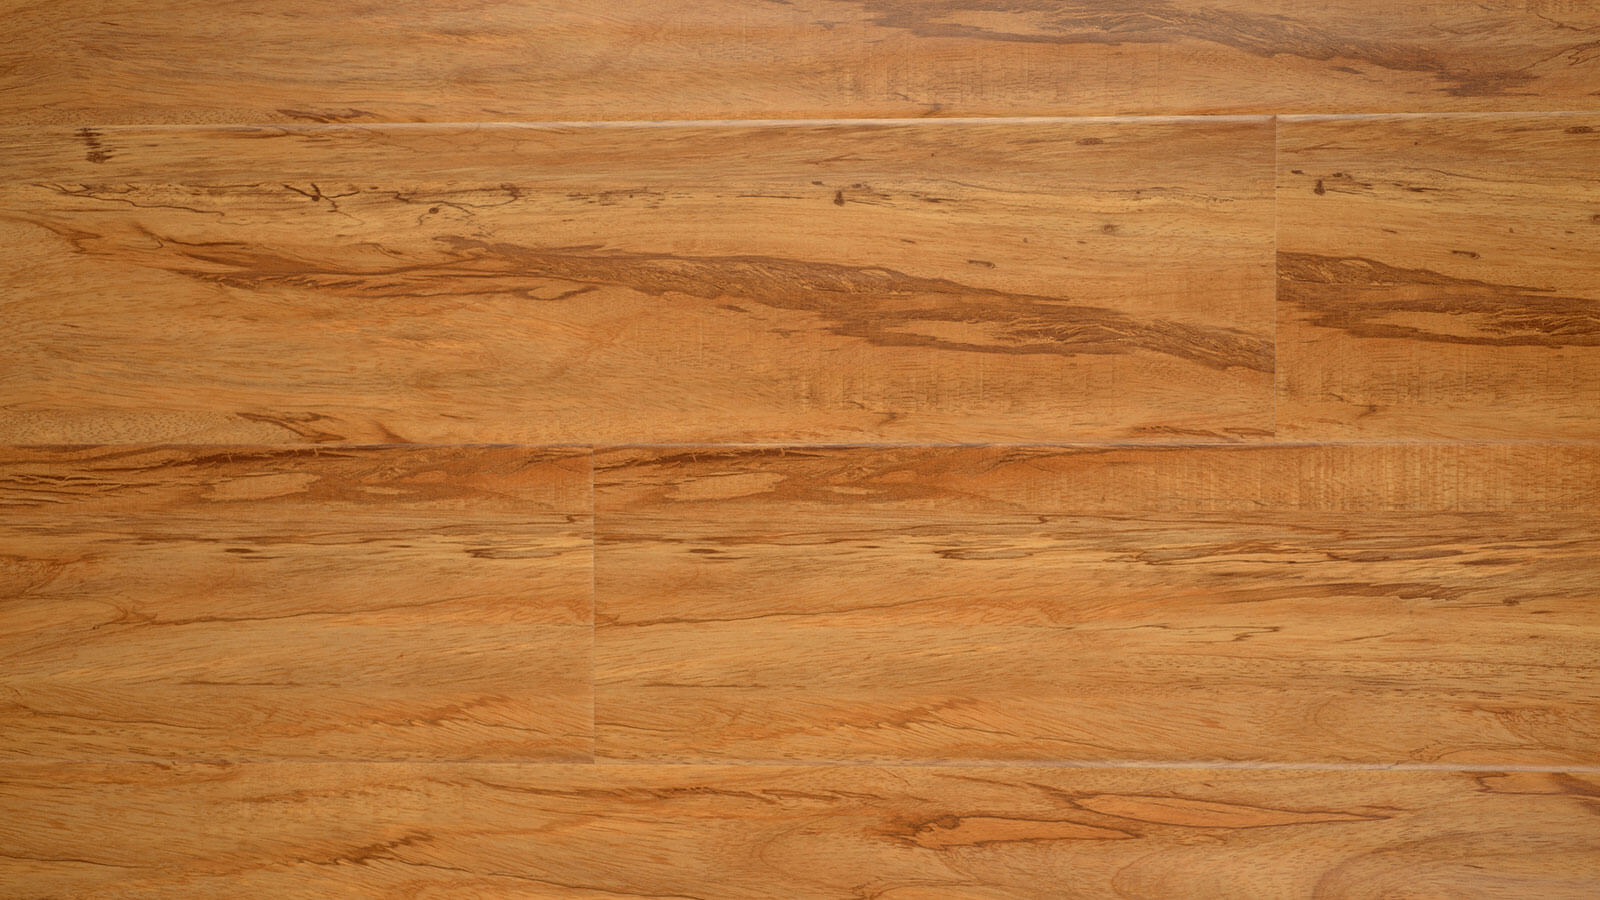 Russet Olive 5 189 Laminate Flooring Modern Home Concepts